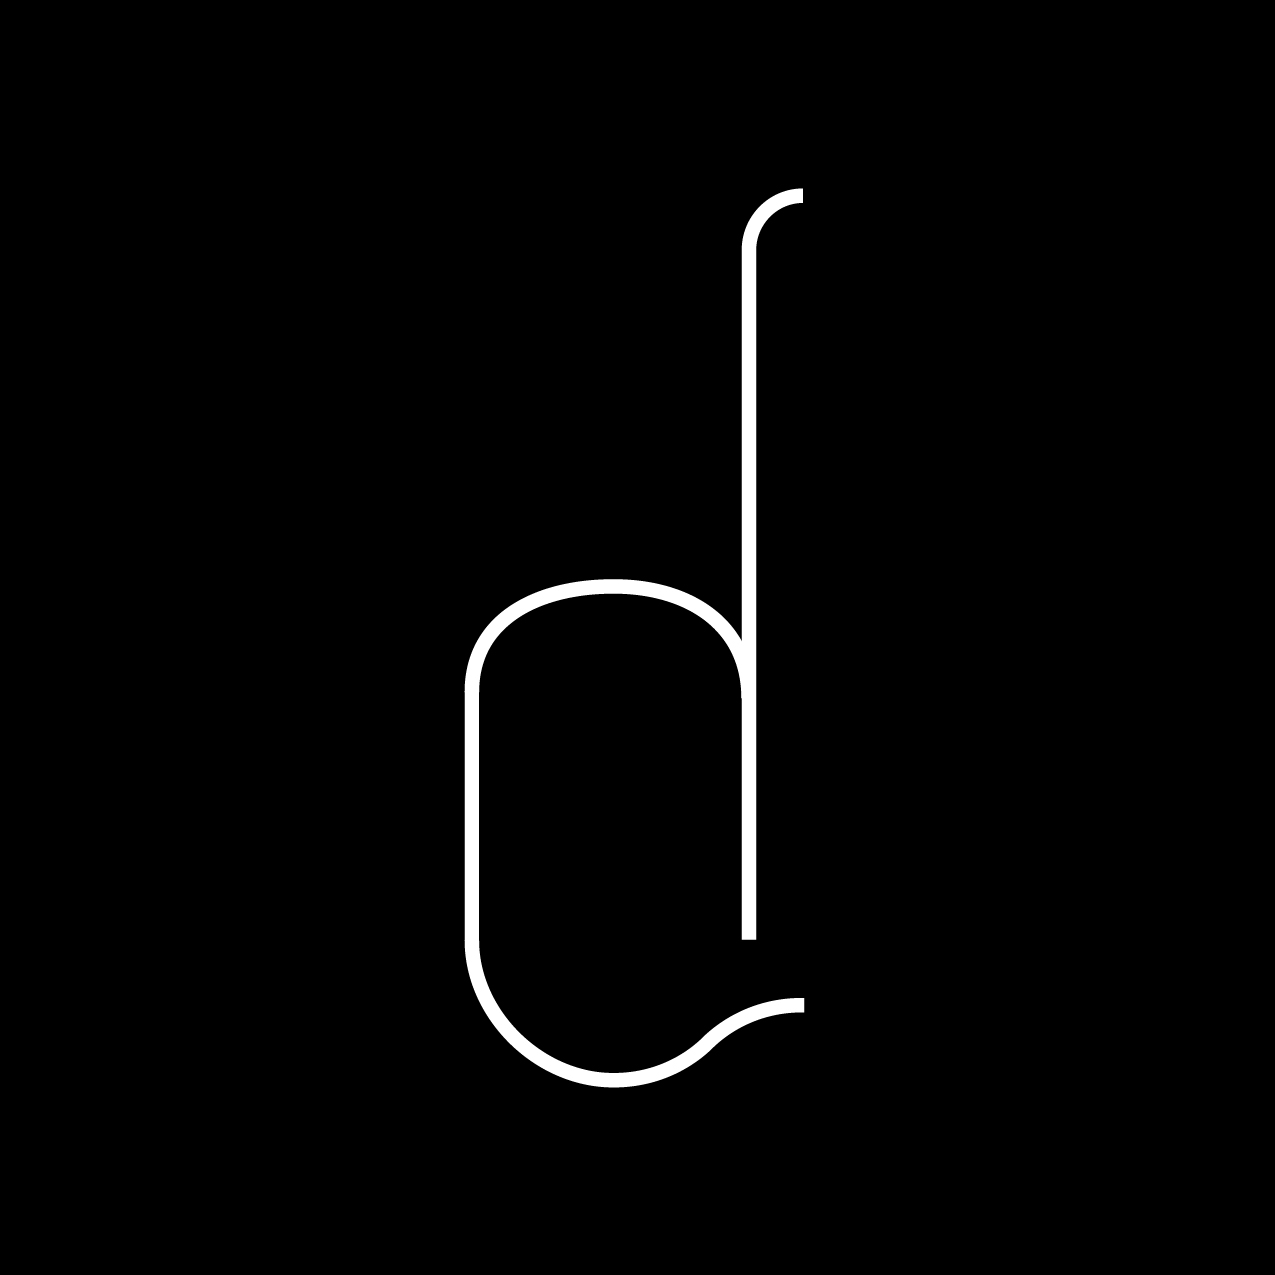 Letter D3 design by Furia